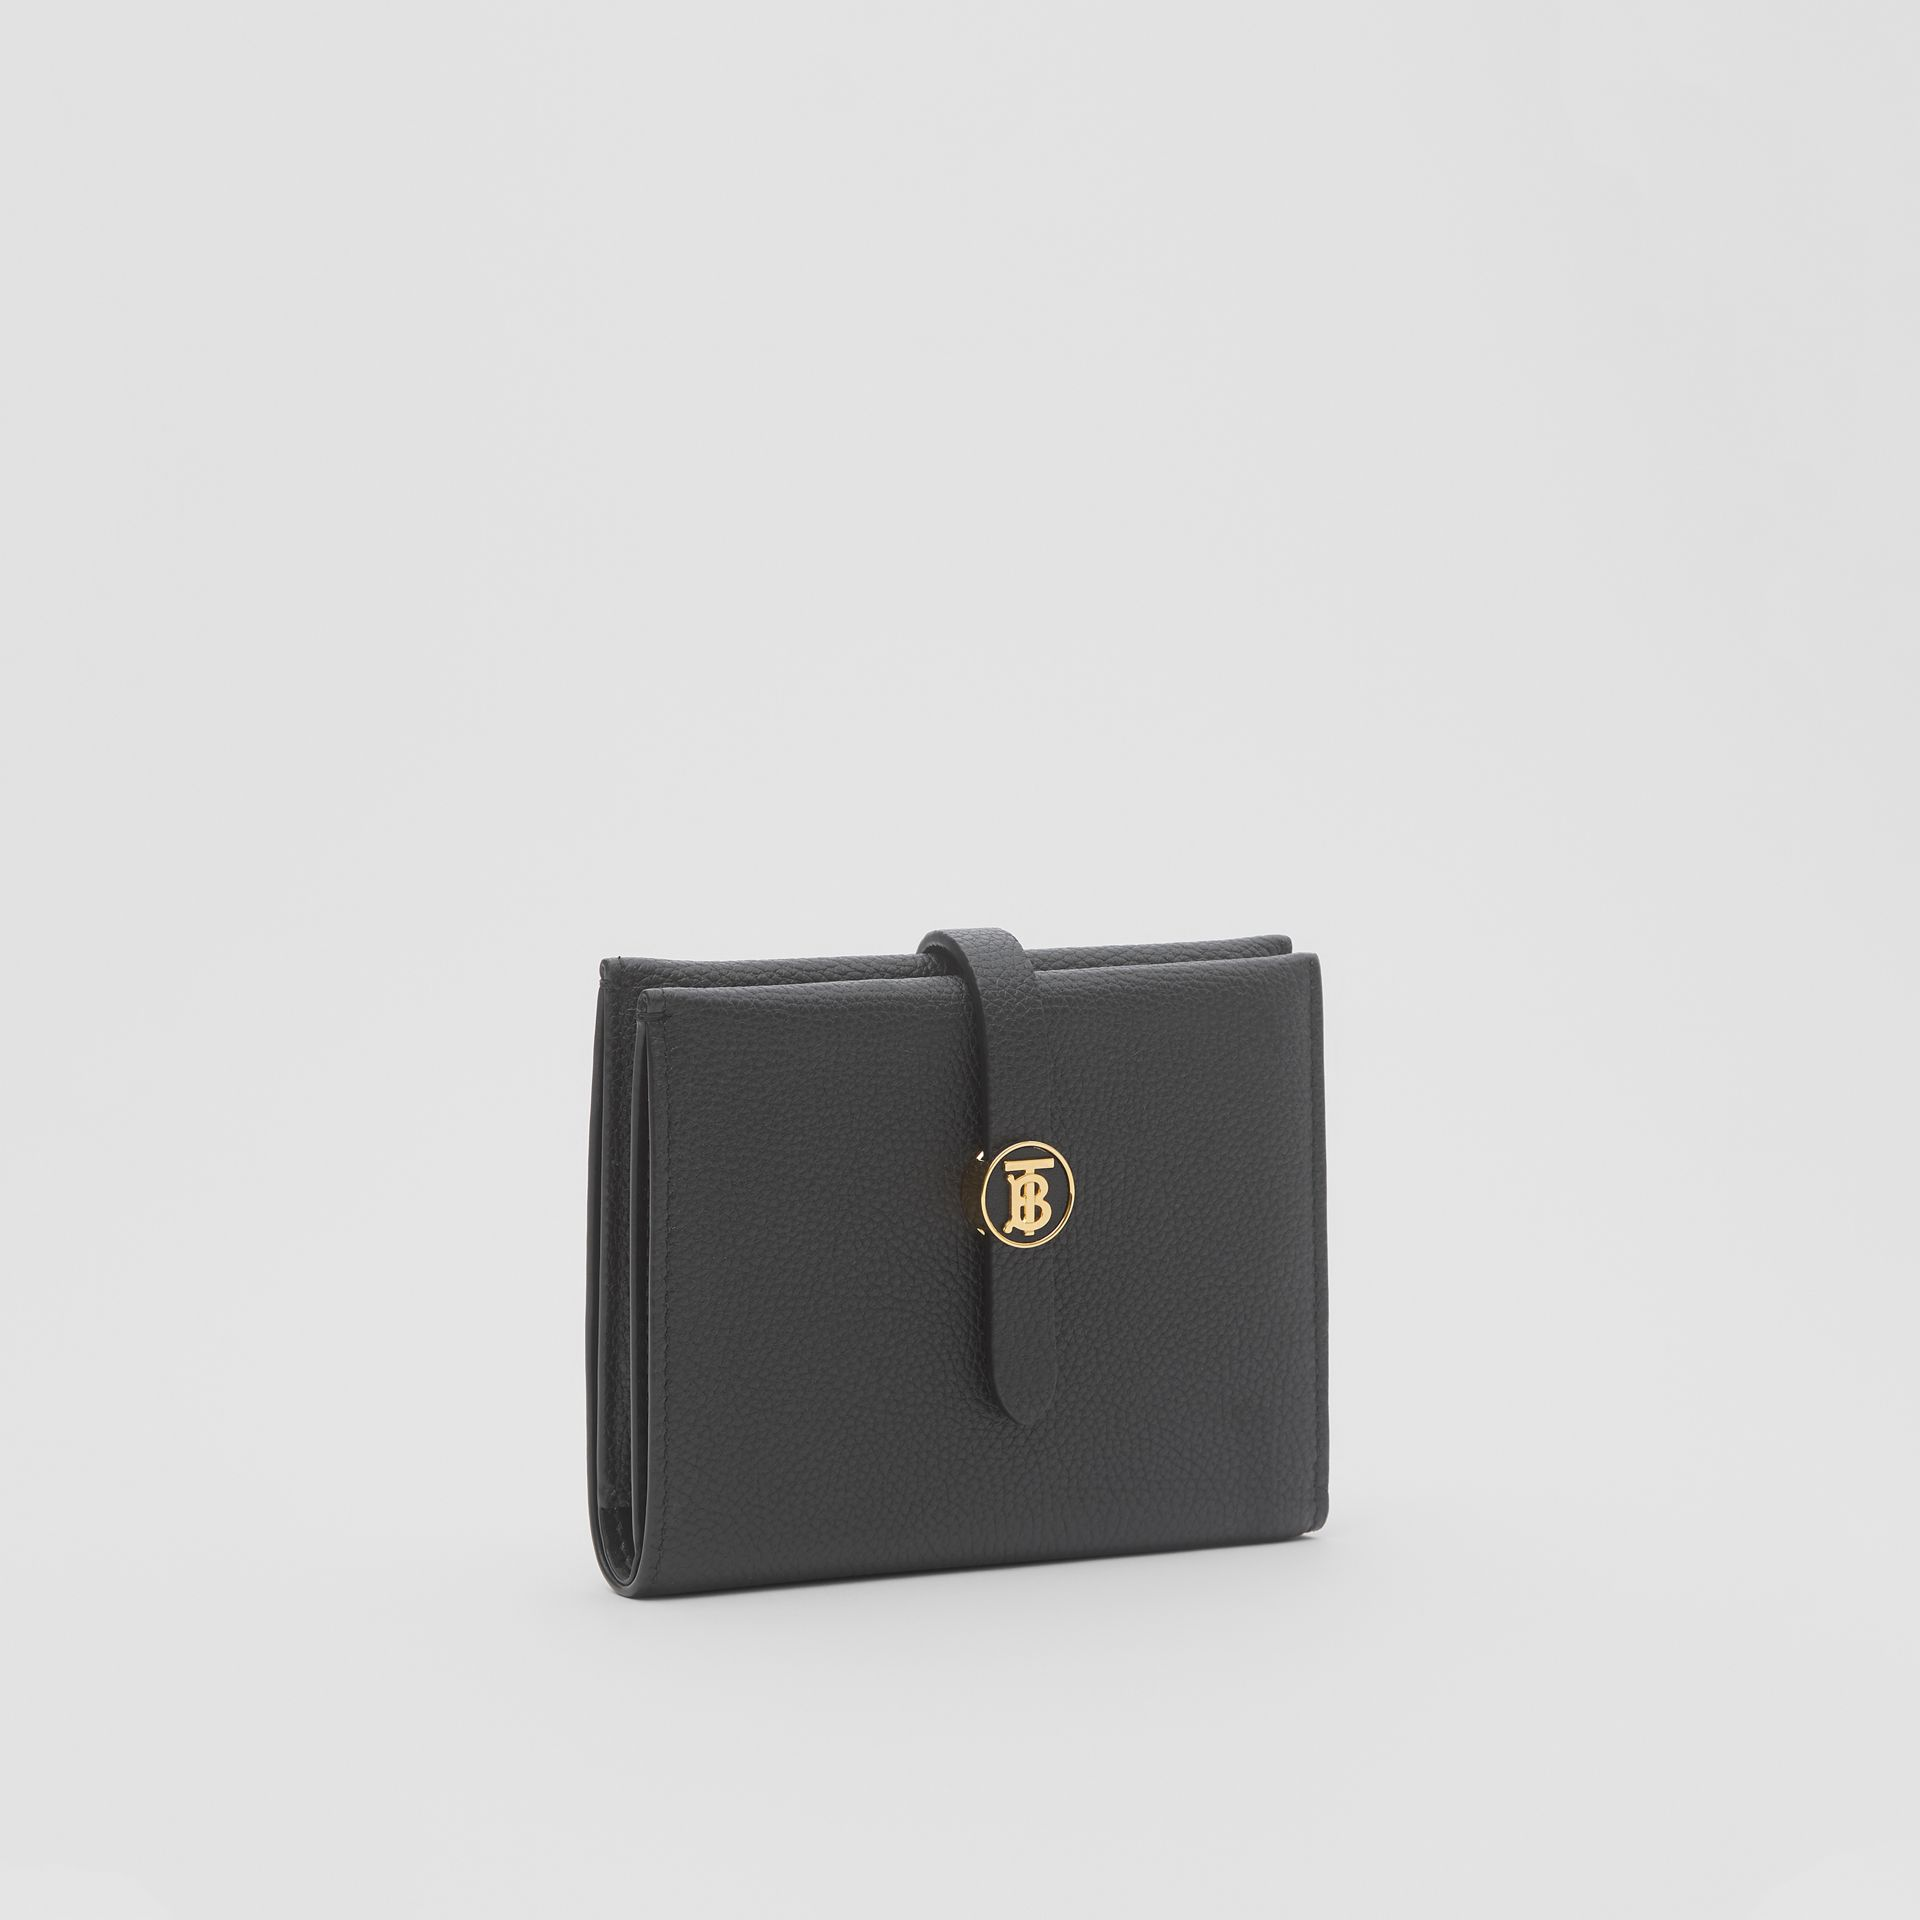 Monogram Motif Grainy Leather Folding Wallet in Black - Women | Burberry United Kingdom - gallery image 3